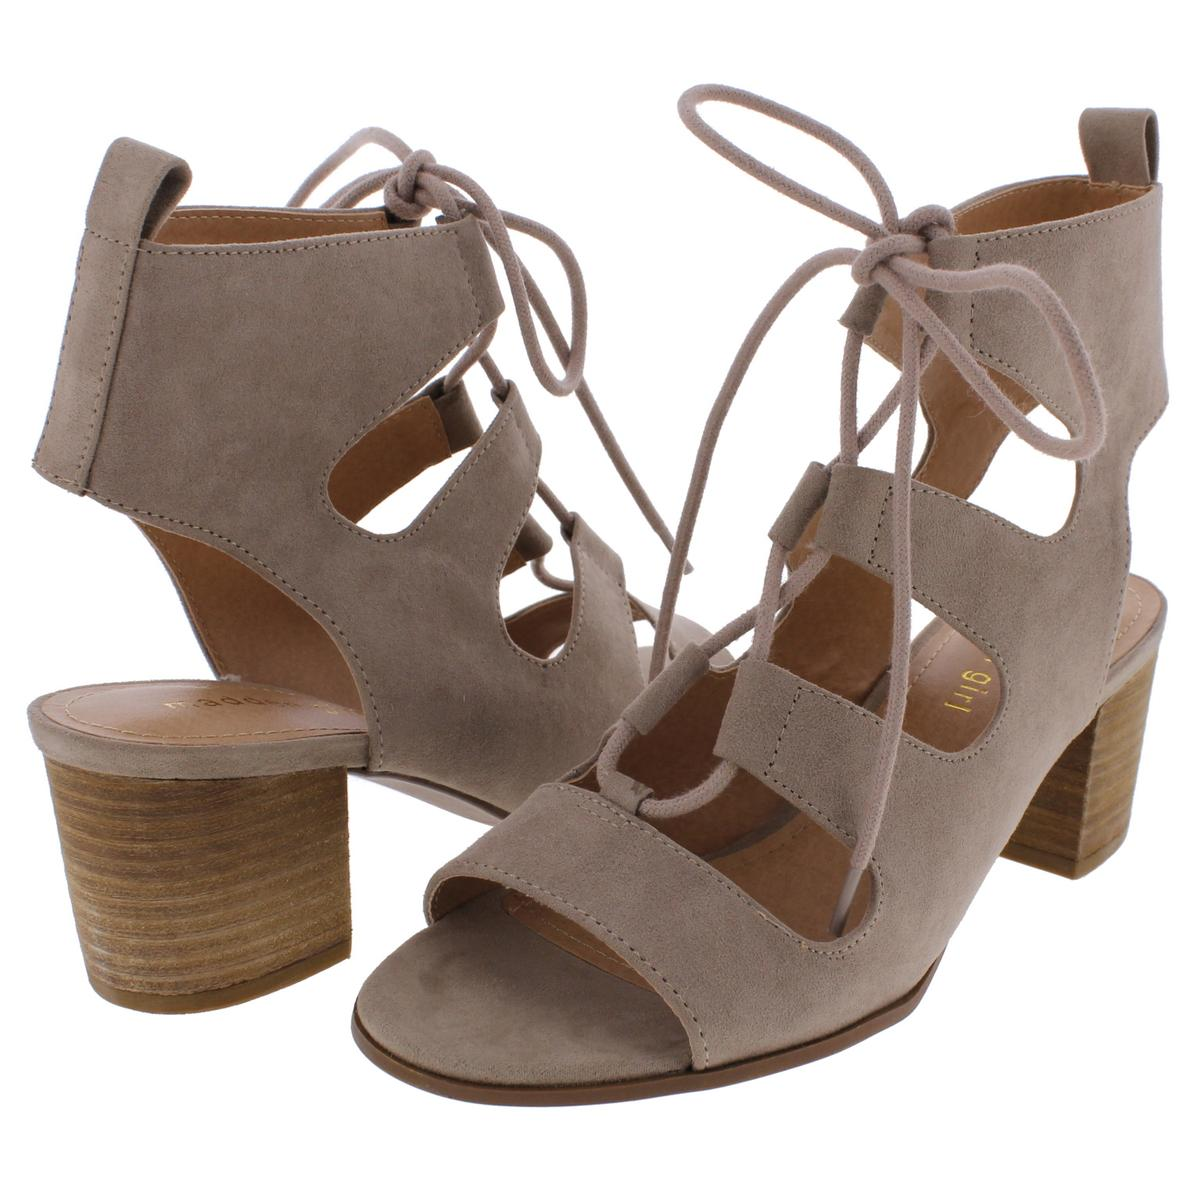 fa1e3f56f51 Details about Madden Girl by Steve Madden Womens Booyah Sandals Lace-Up  Heels Shoes BHFO 9876